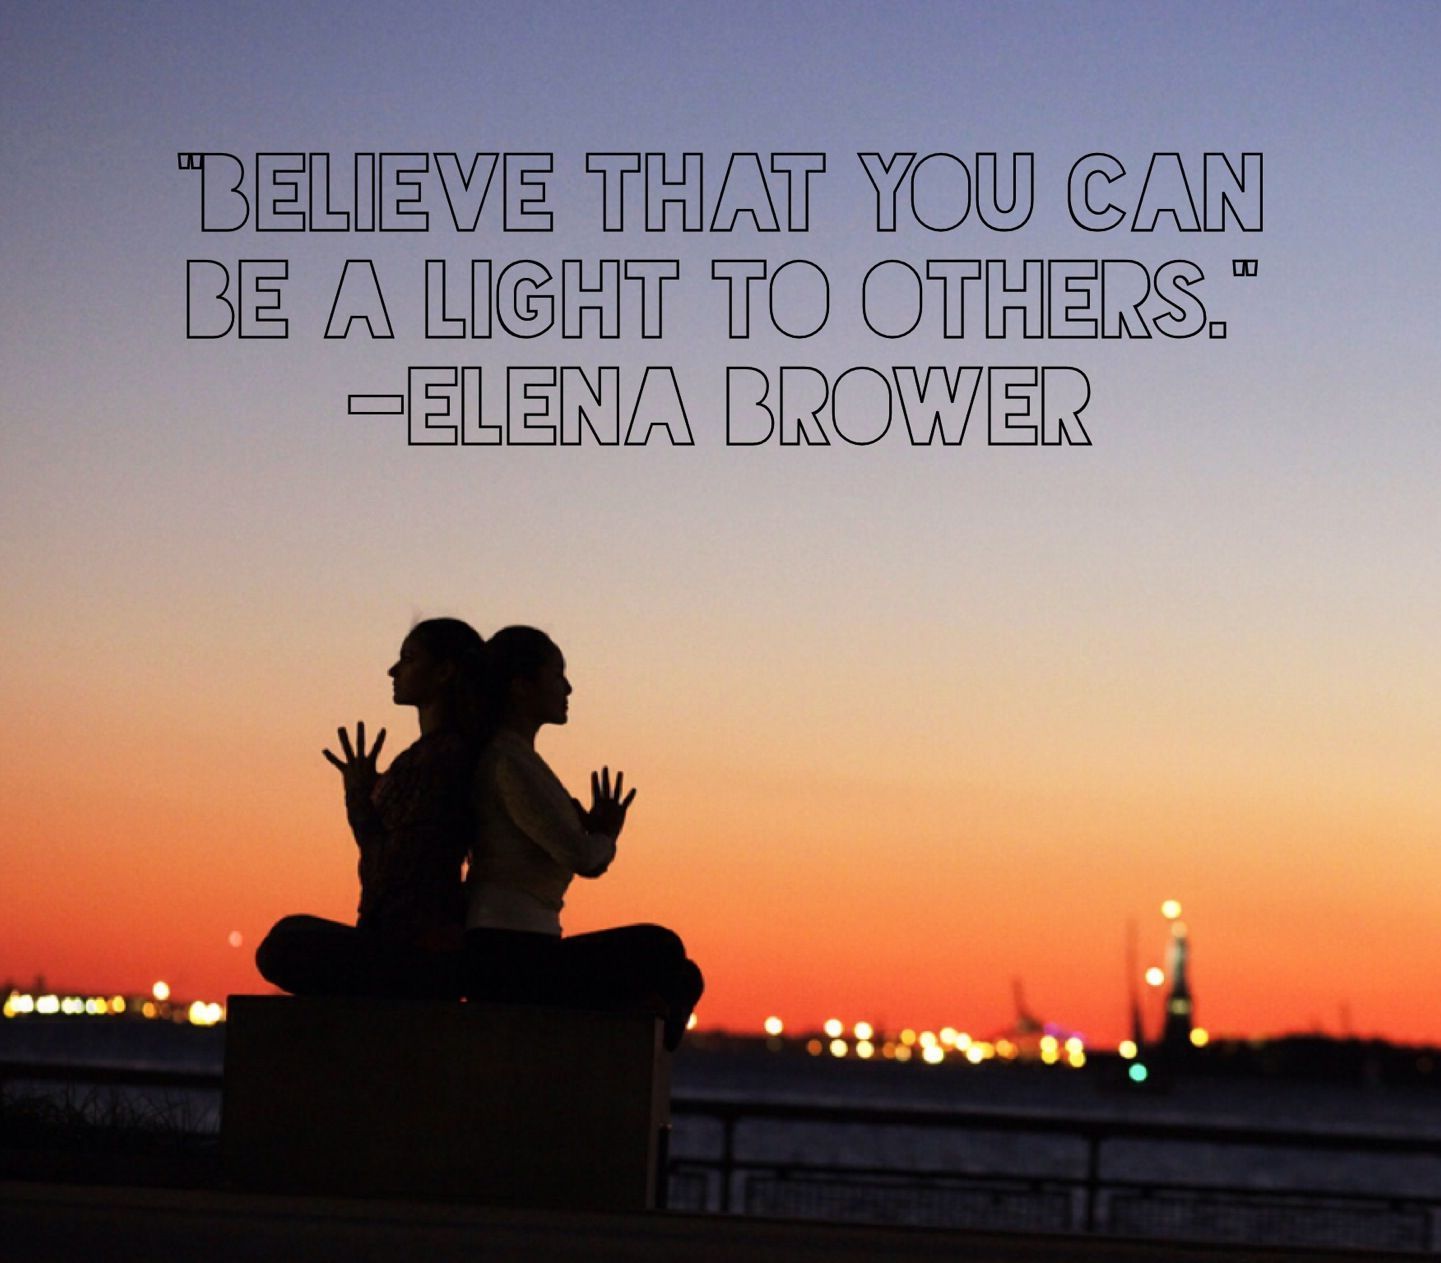 Believe that you can be a light to others. yoga